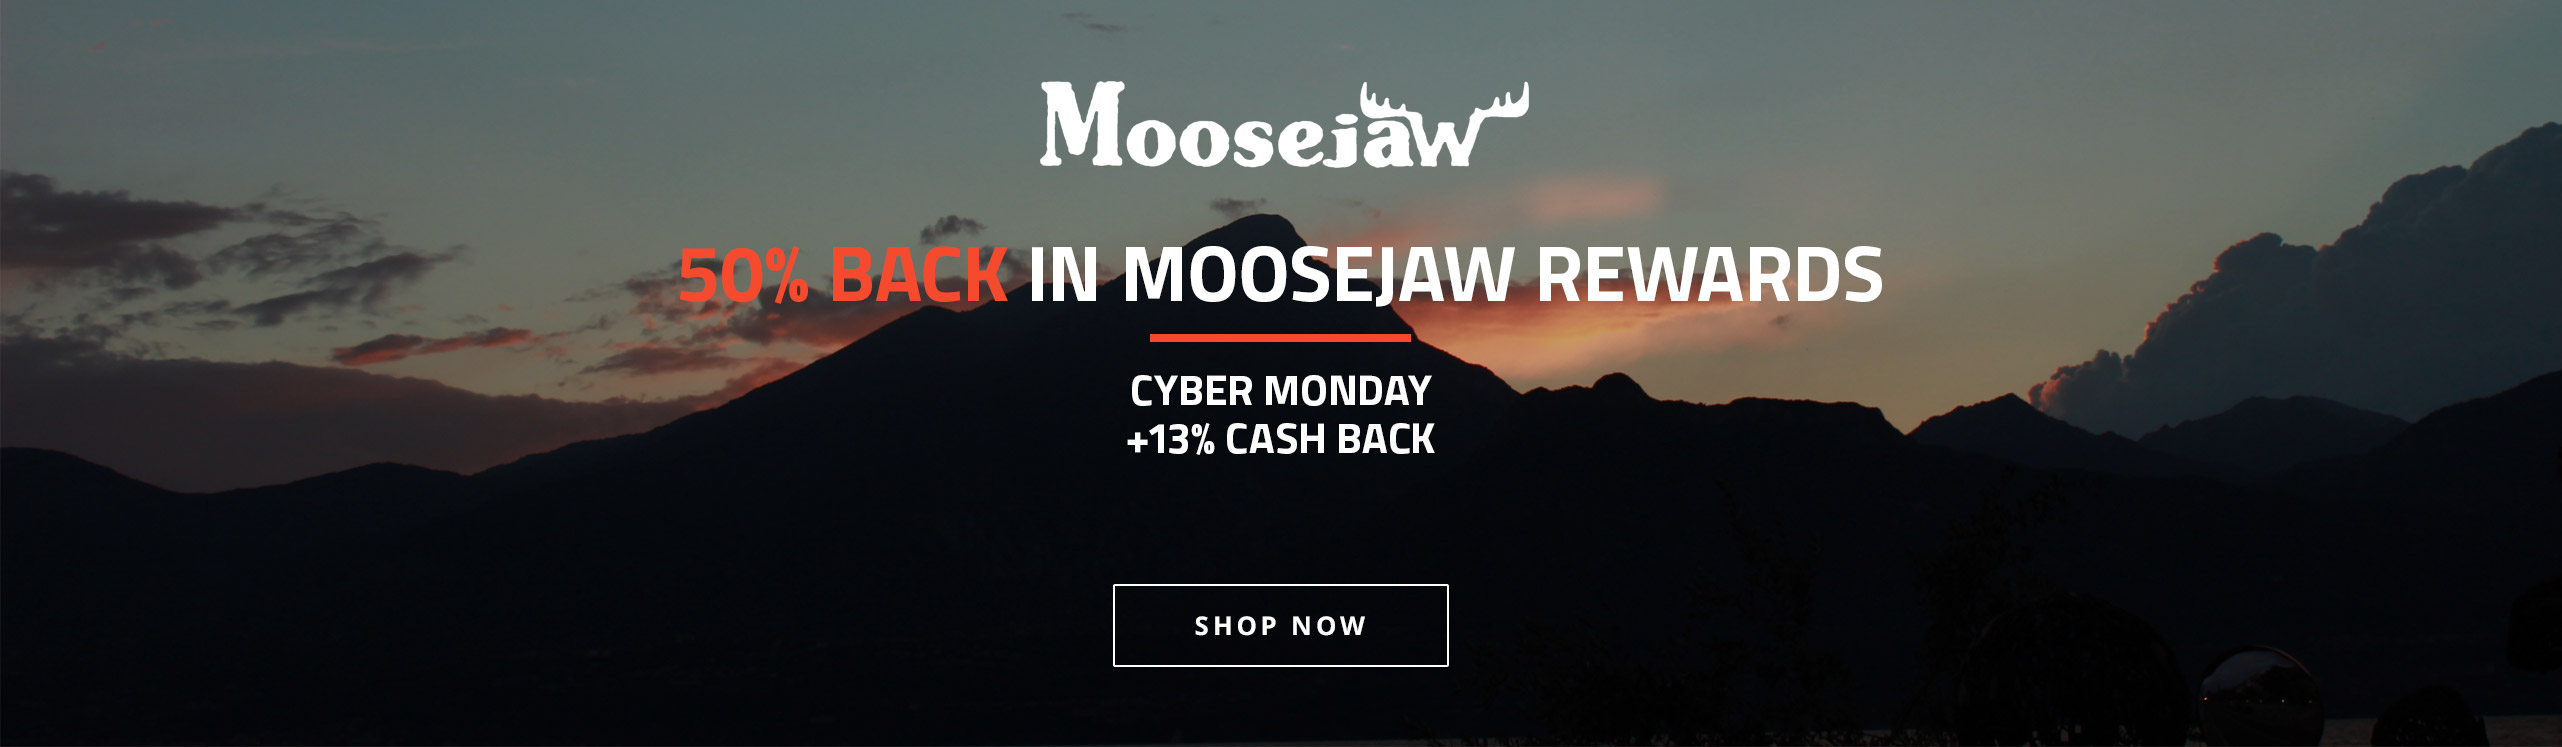 Moosejaw Cyber Monday